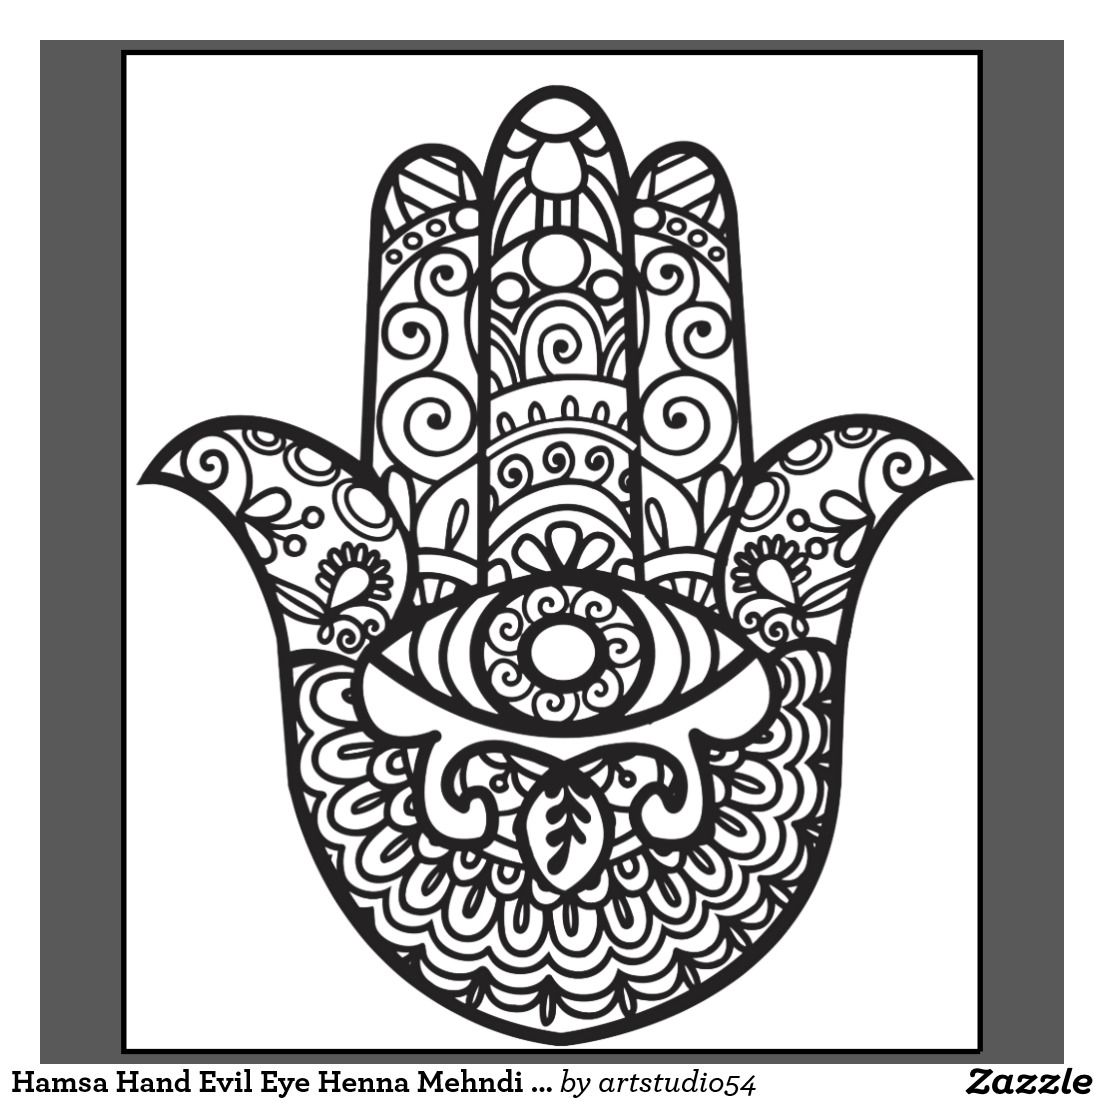 Design t shirt zazzle - Hamsa Hand Evil Eye Henna Mehndi Style T Shirt